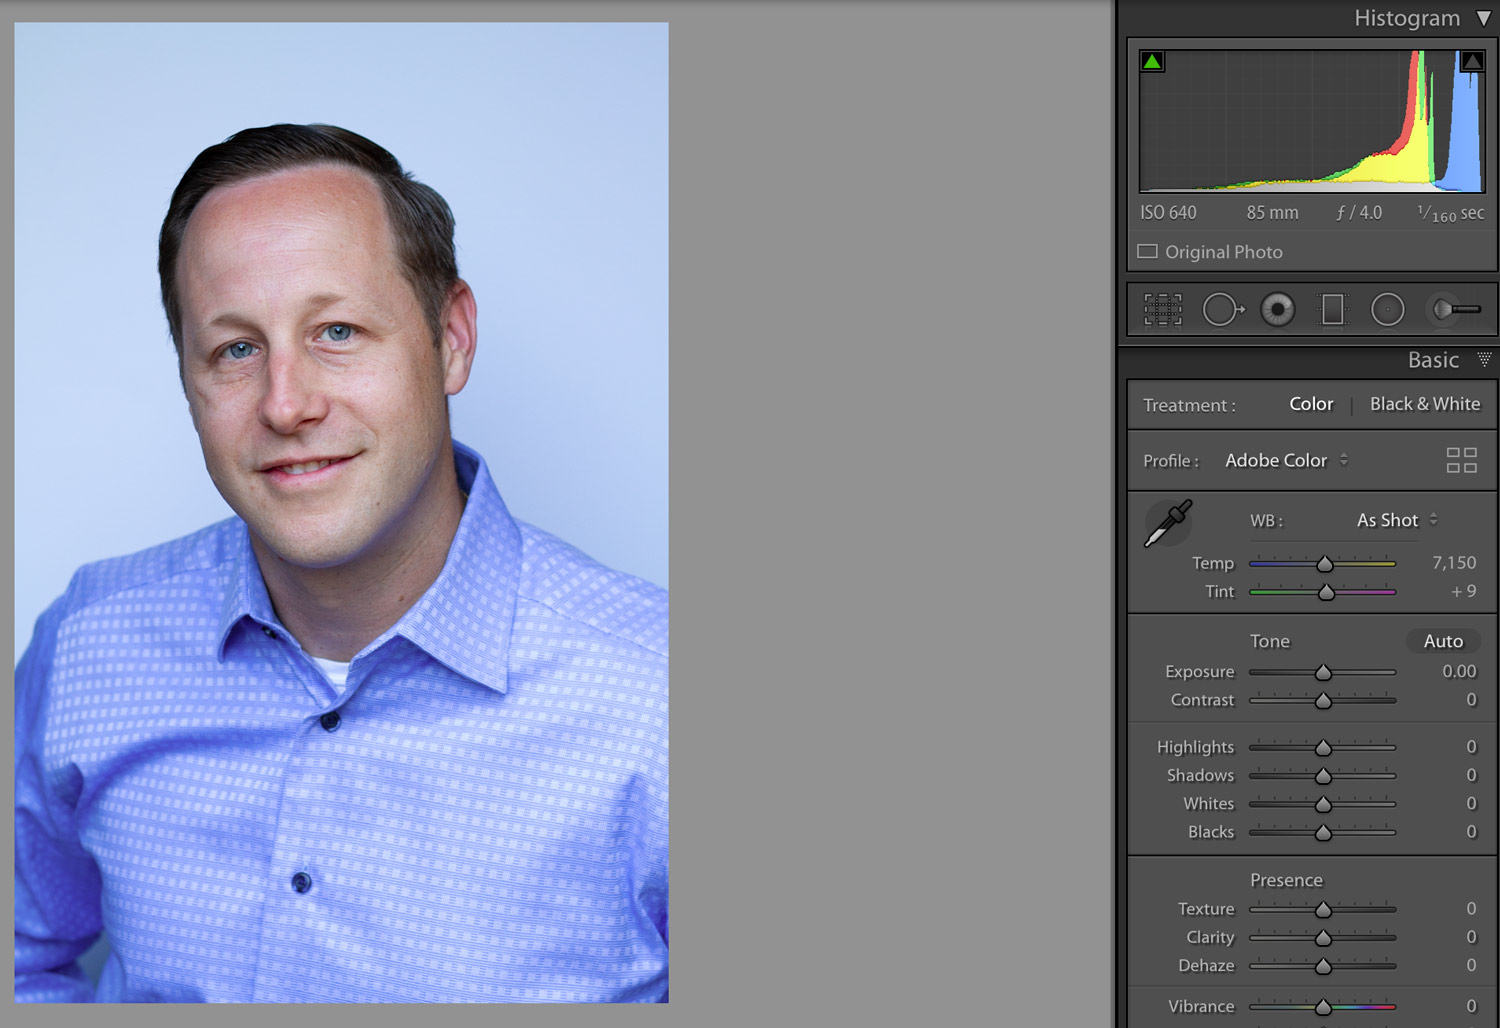 Professional Headshot before any editing in Adobe Lightroom